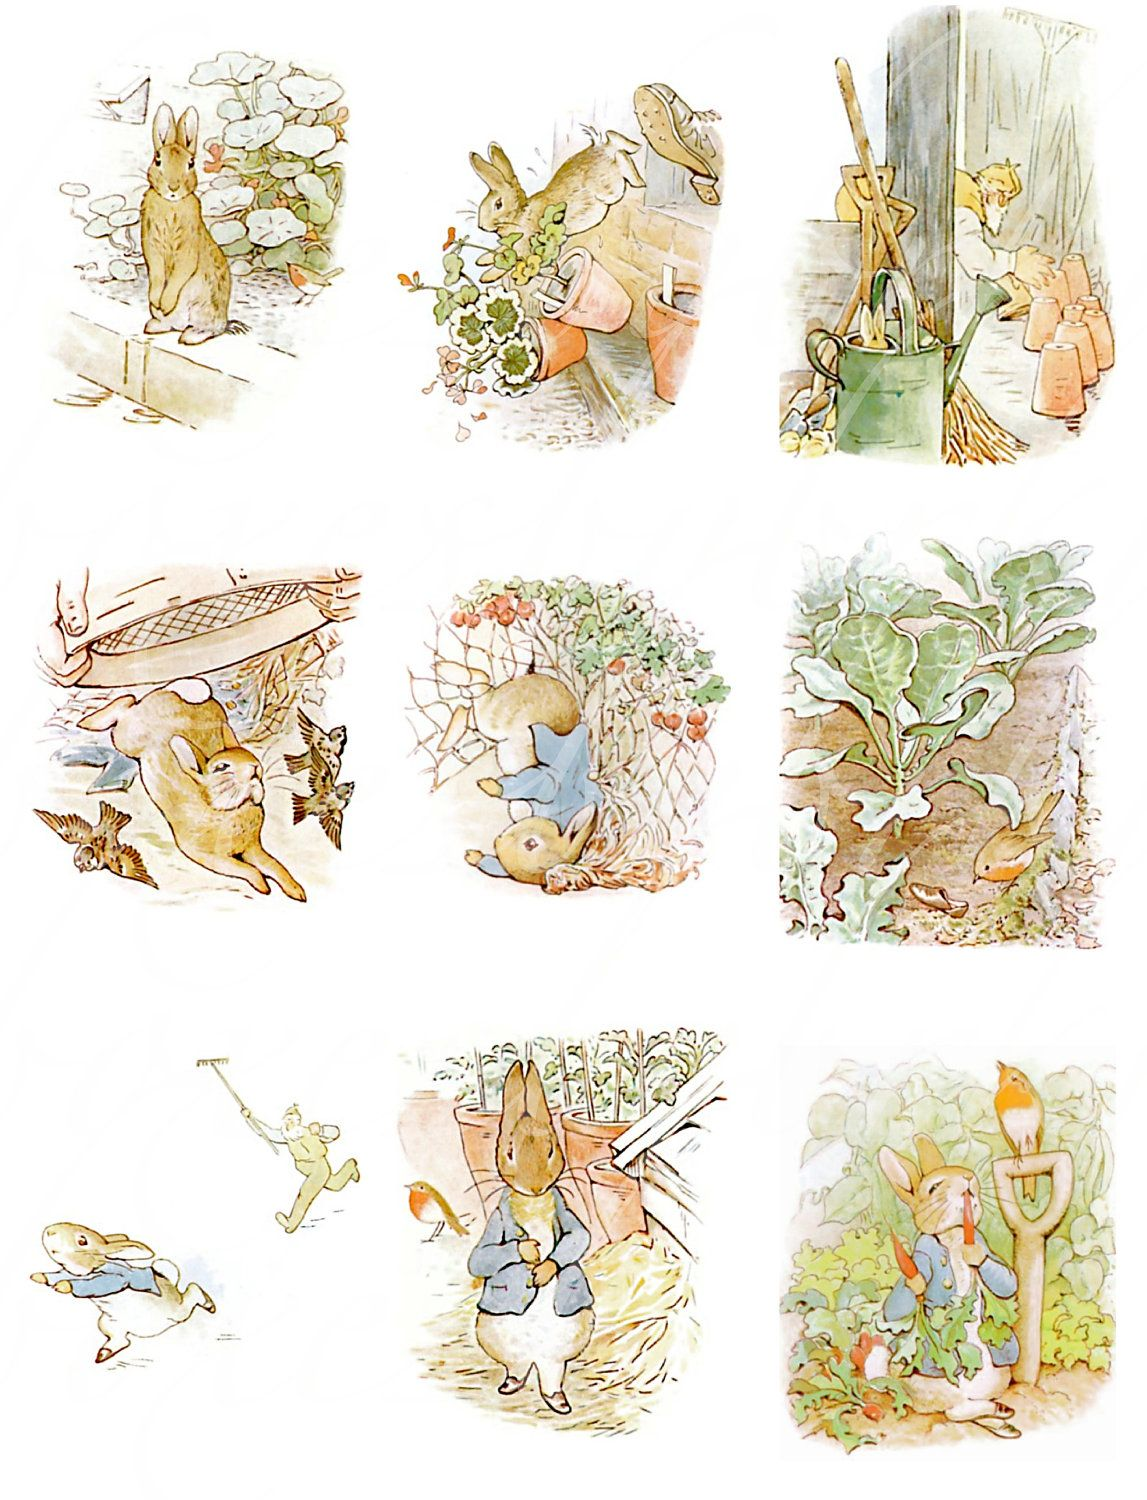 24 Antique Peter Rabbit Images From The Tale Of Peter Rabbit By Beatrix Potter Digital Collage